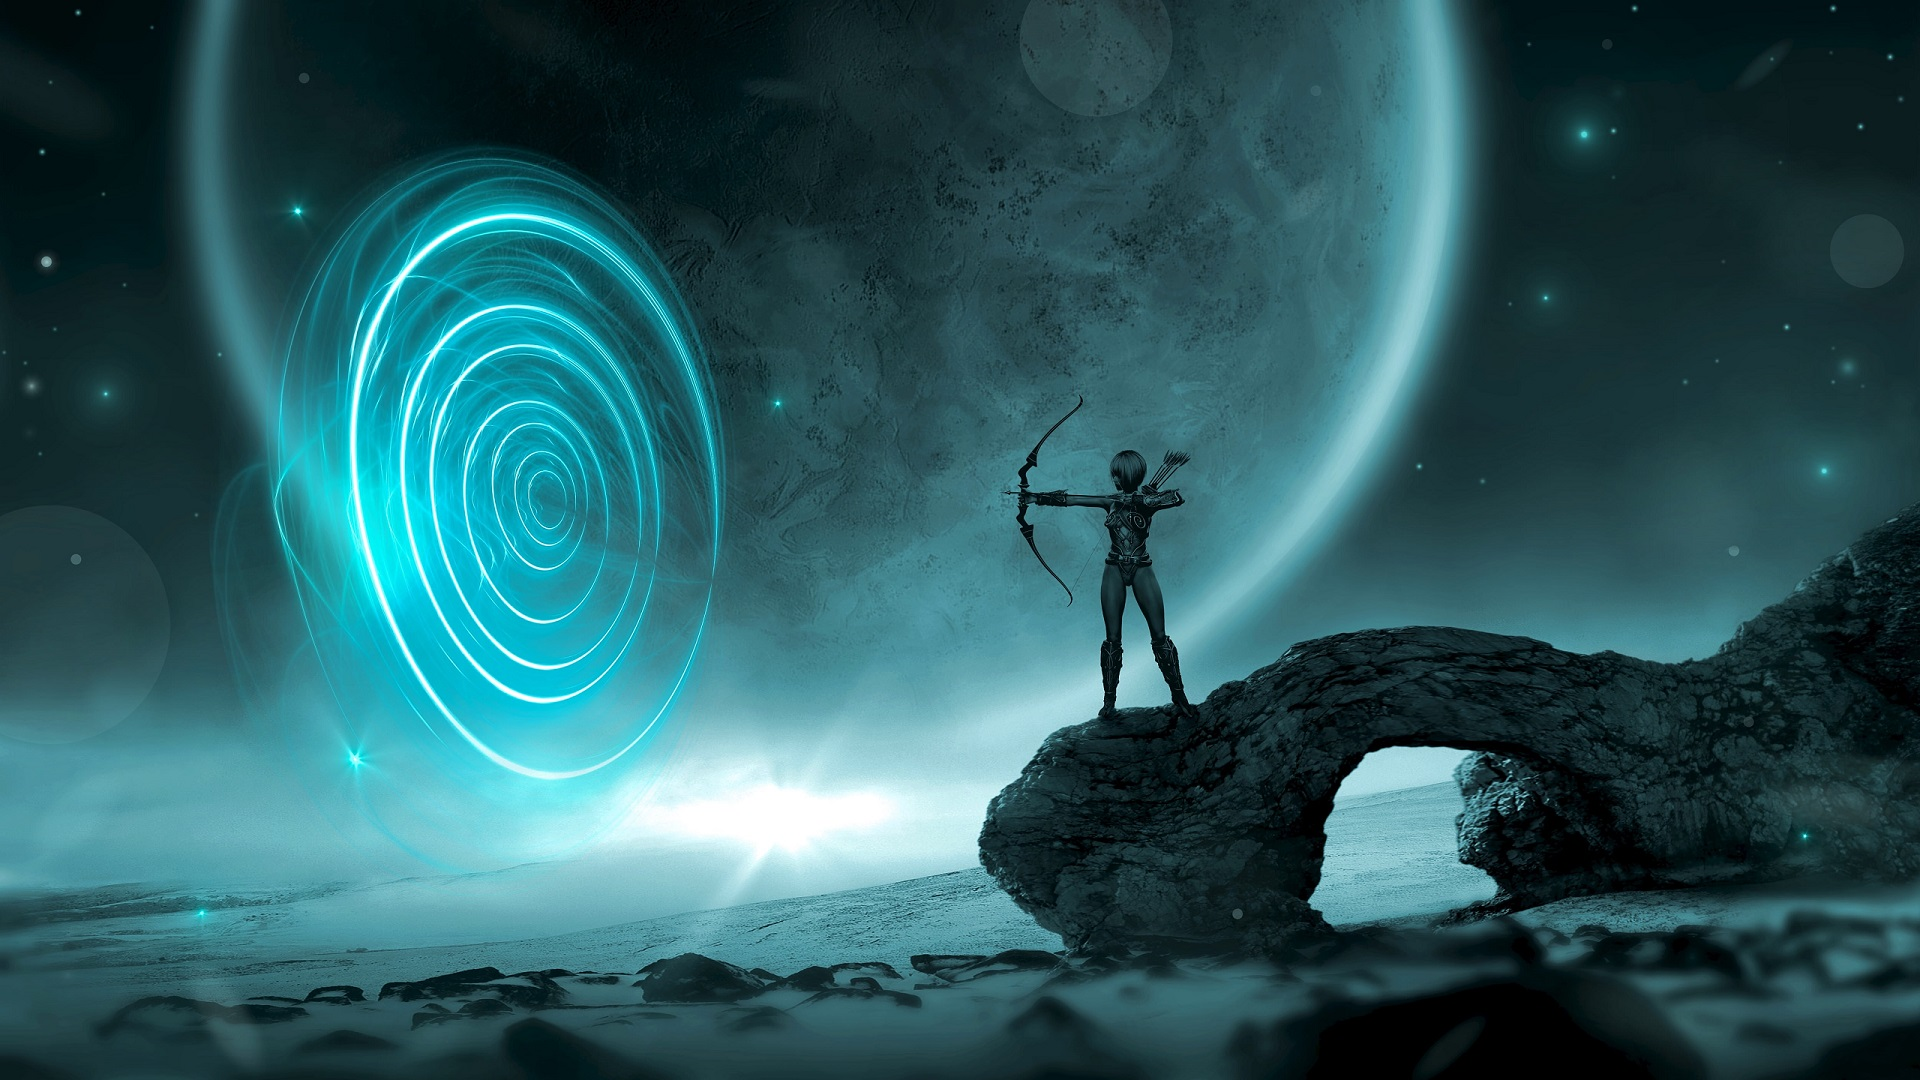 General 1920x1080 artwork fantasy art archer bow arrows space planet circle cyan